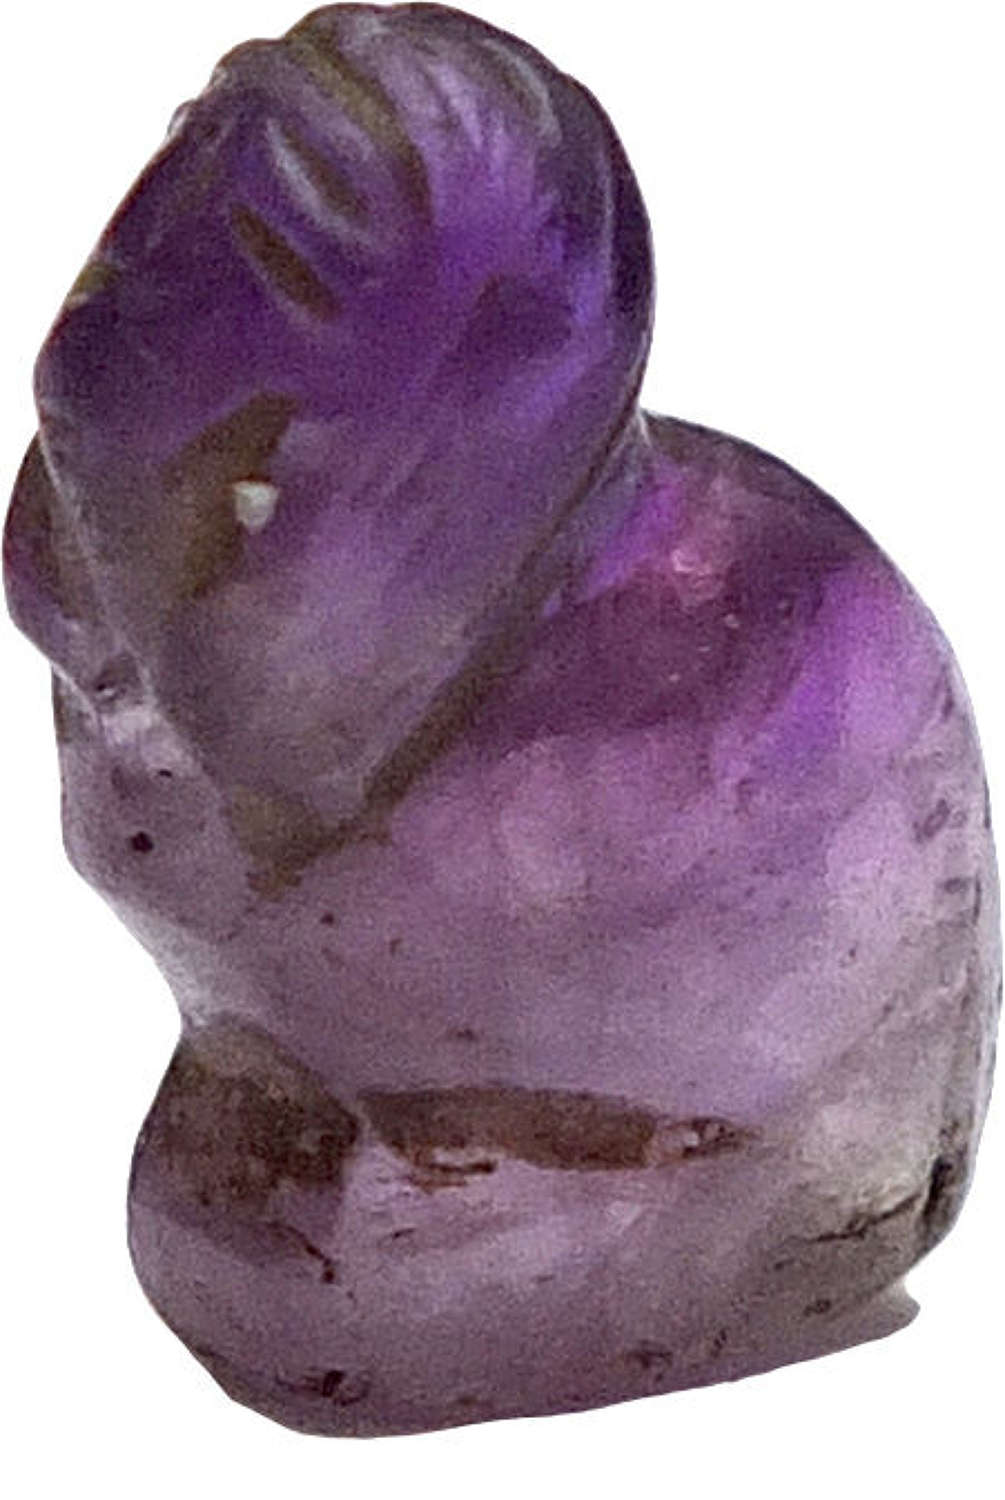 A small amethyst amulet of a crouching sphinx, c. 2055-1650 B.C.